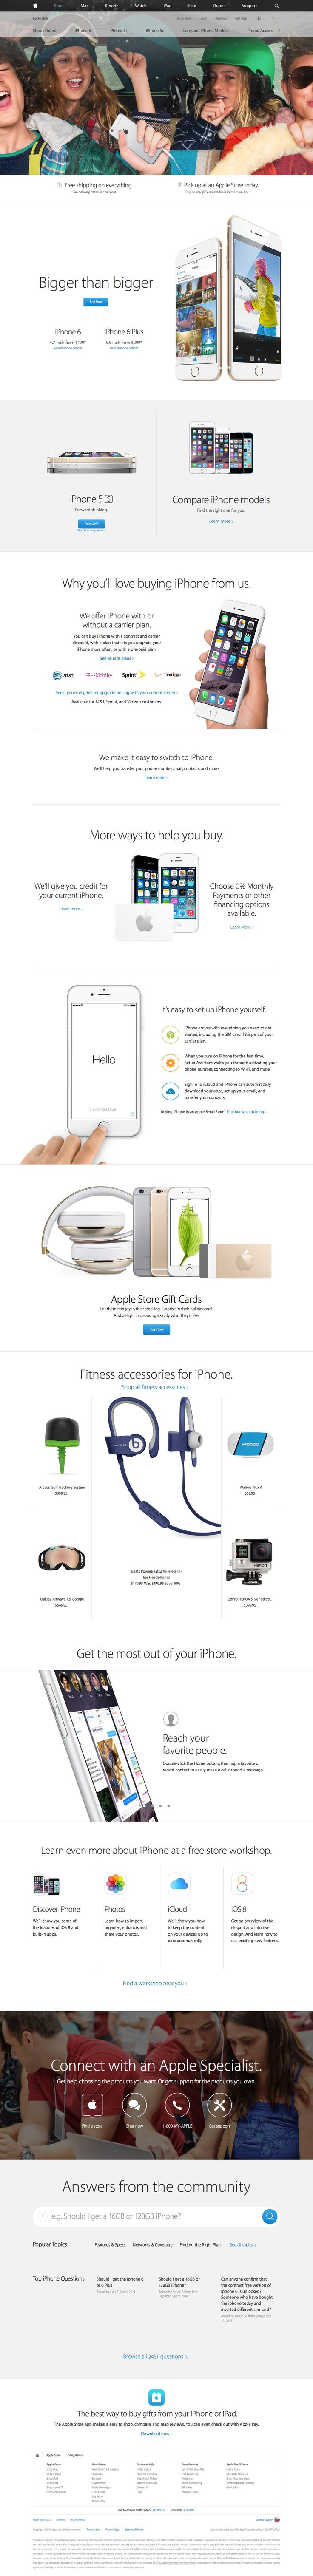 Apple Desktop Product Page Apple.com has always been a website that has pushed web design to the next level. The iPhone 6 page on the Apple site is another fresh approach. Because this page showcases all current iPhones, it's classified as a category page.  - http://www.cartrepublic.com/gallery/2014/12/apple-desktop-product-page/